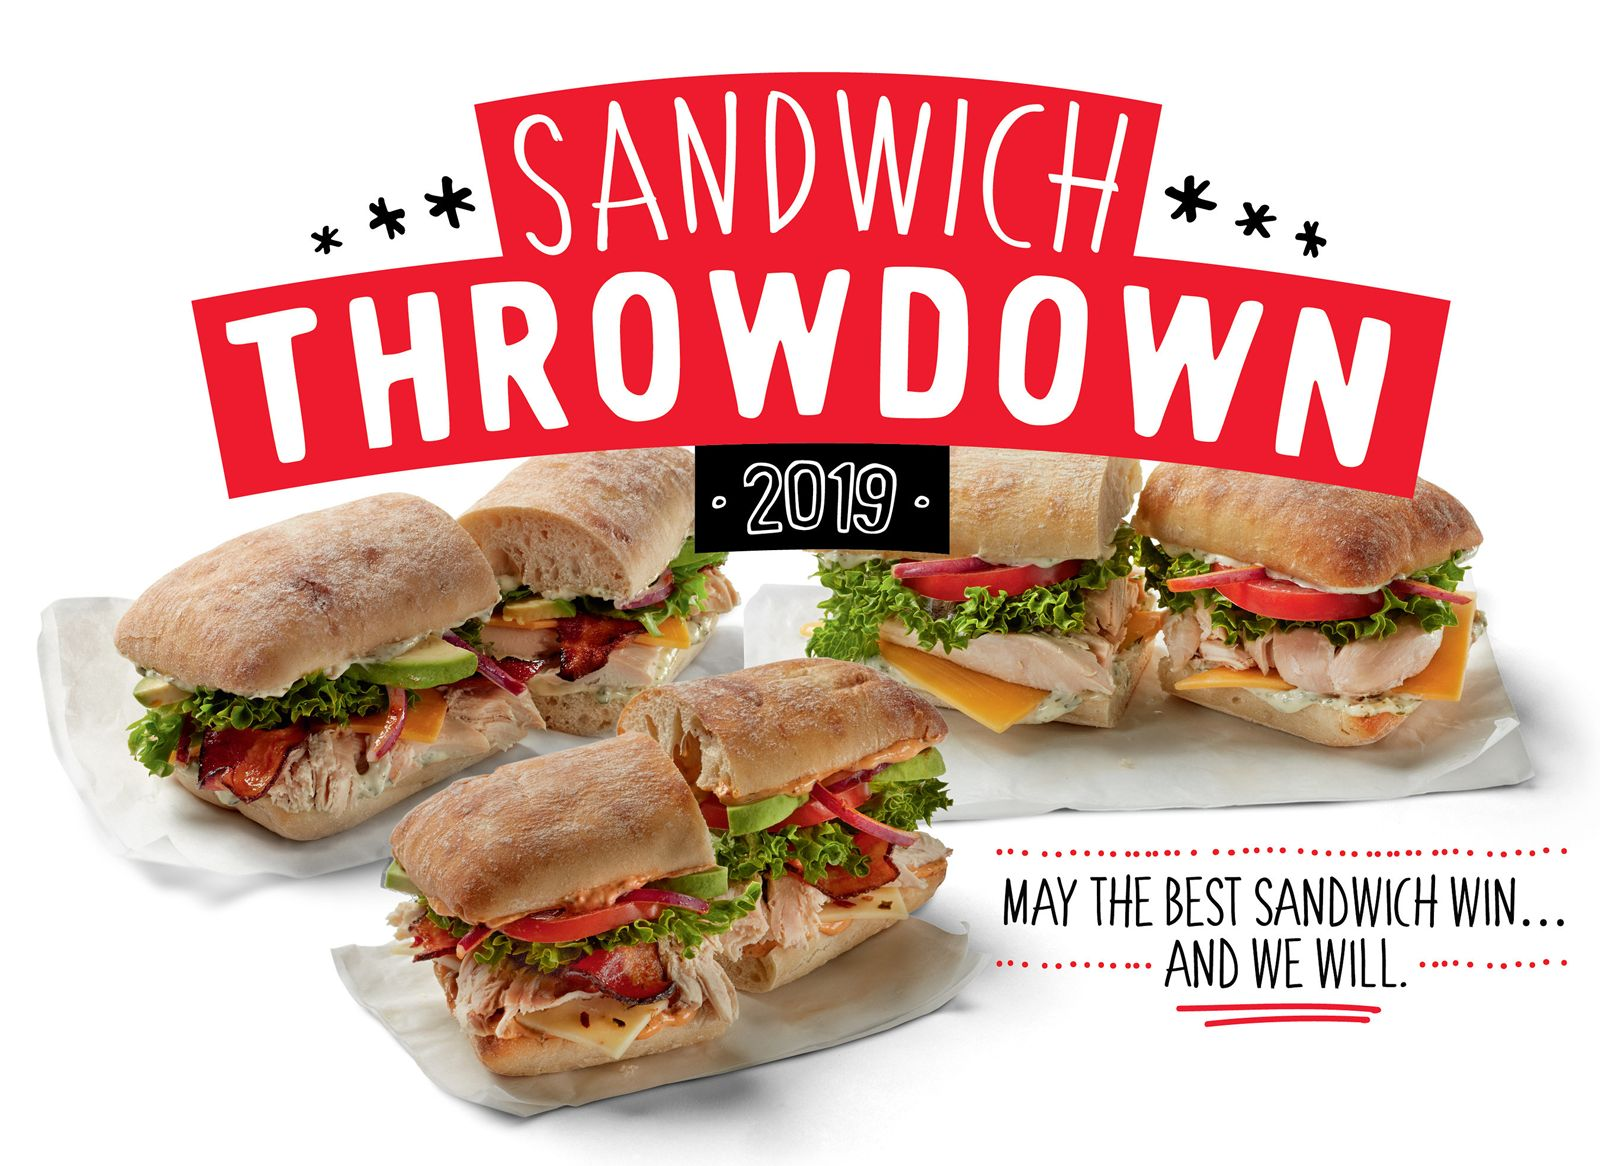 Boston Market Challenges Competitors To A Sandwich Throwdown